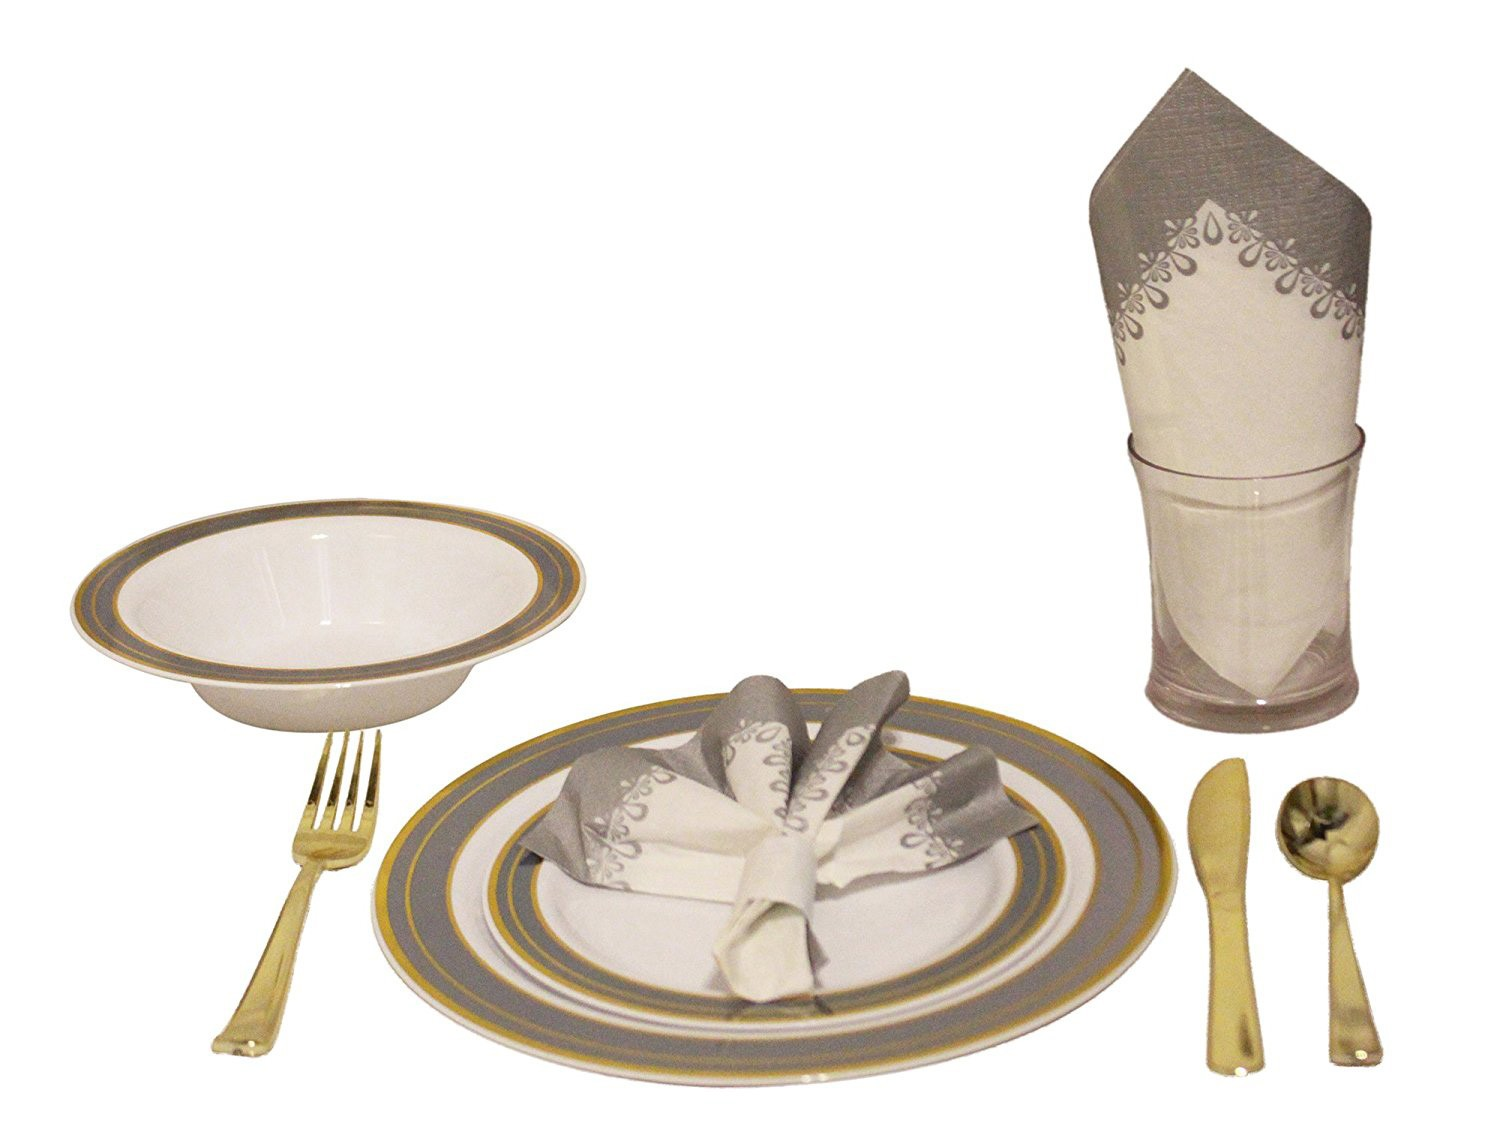 TigerChef Heavyweight Premium Plastic Dinnerware Set with Gold and Silver Trim - Service for 20  sc 1 st  TigerChef & TigerChef Heavyweight Premium Plastic Dinnerware Set with Gold and ...